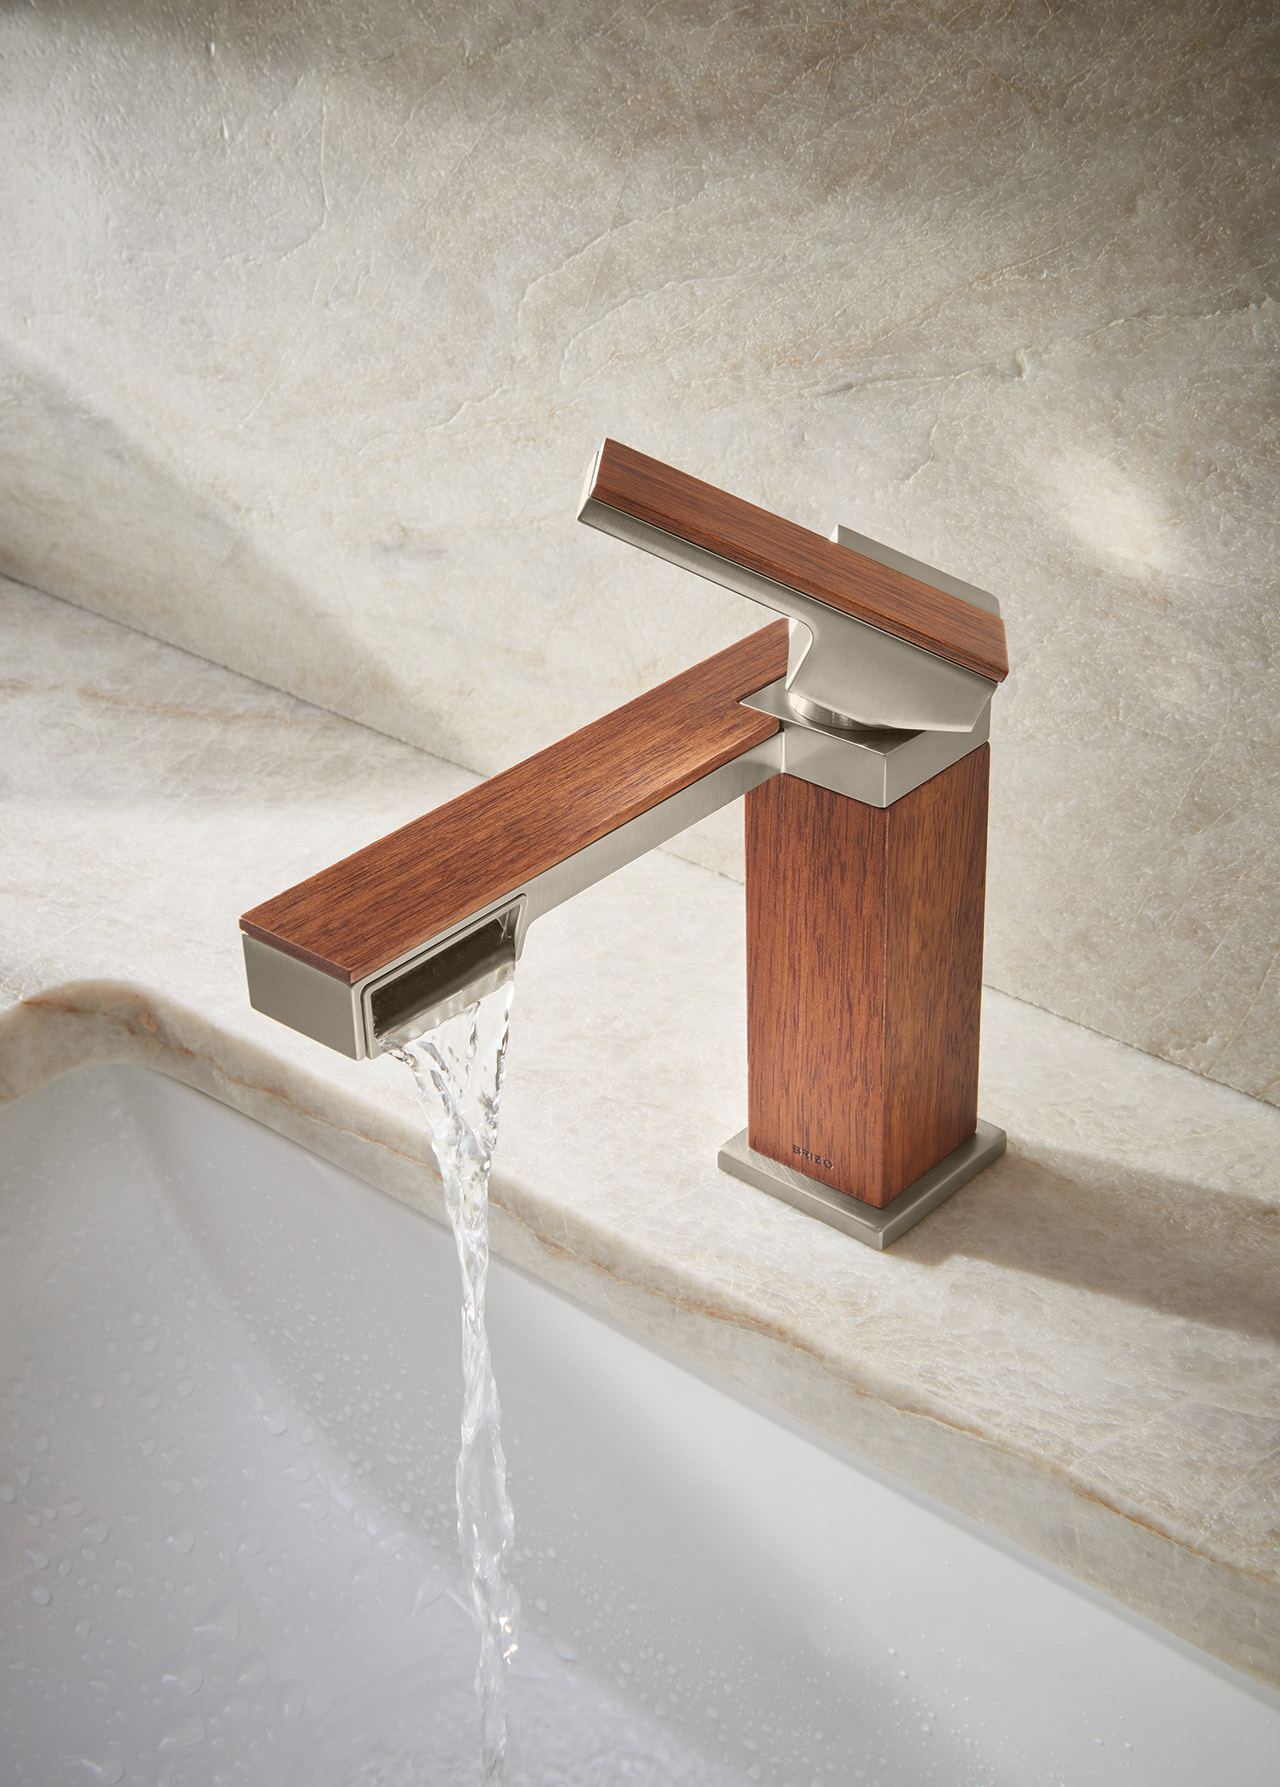 wood and metal angular sink faucet with water turned on